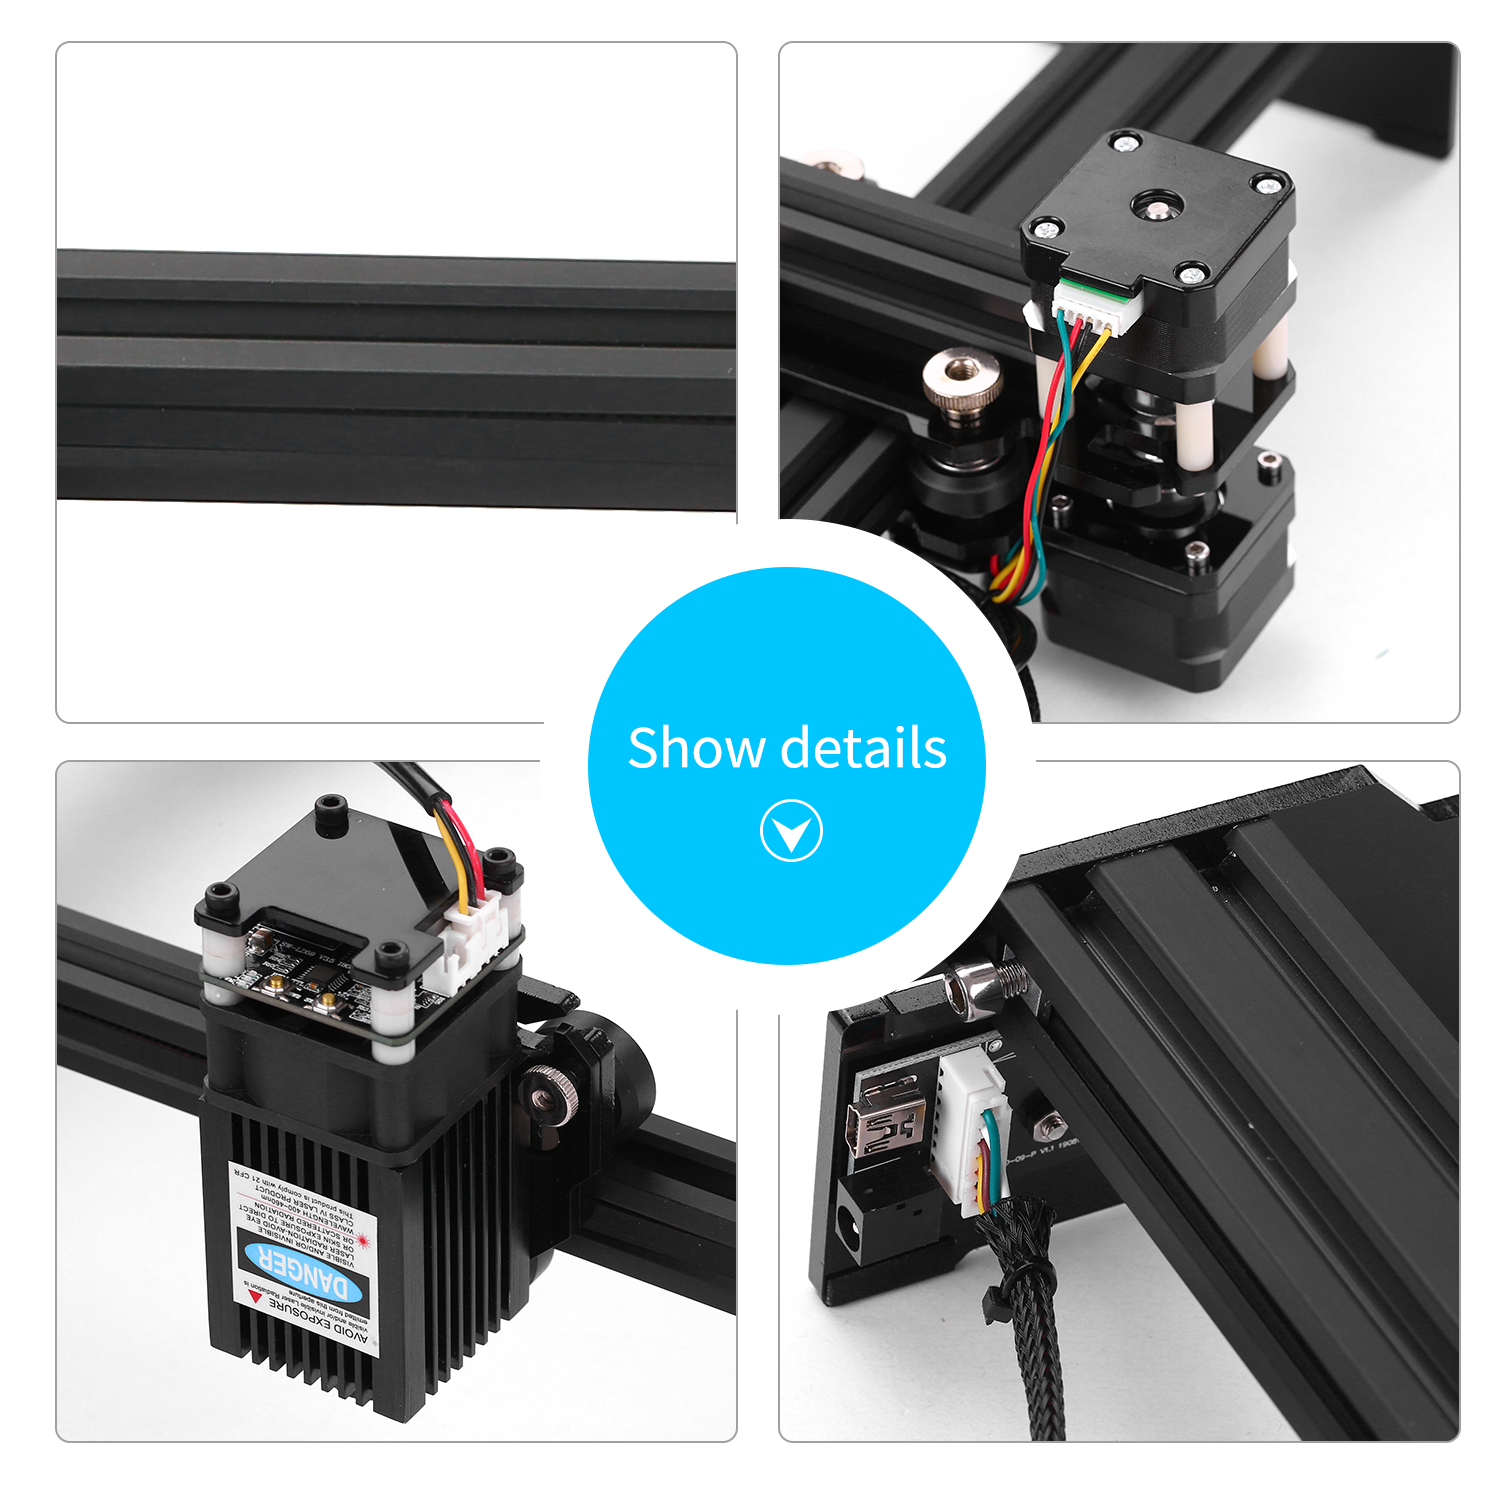 VG-L7 Portable Laser Engraving Machine with 330x190mm Working Area 2